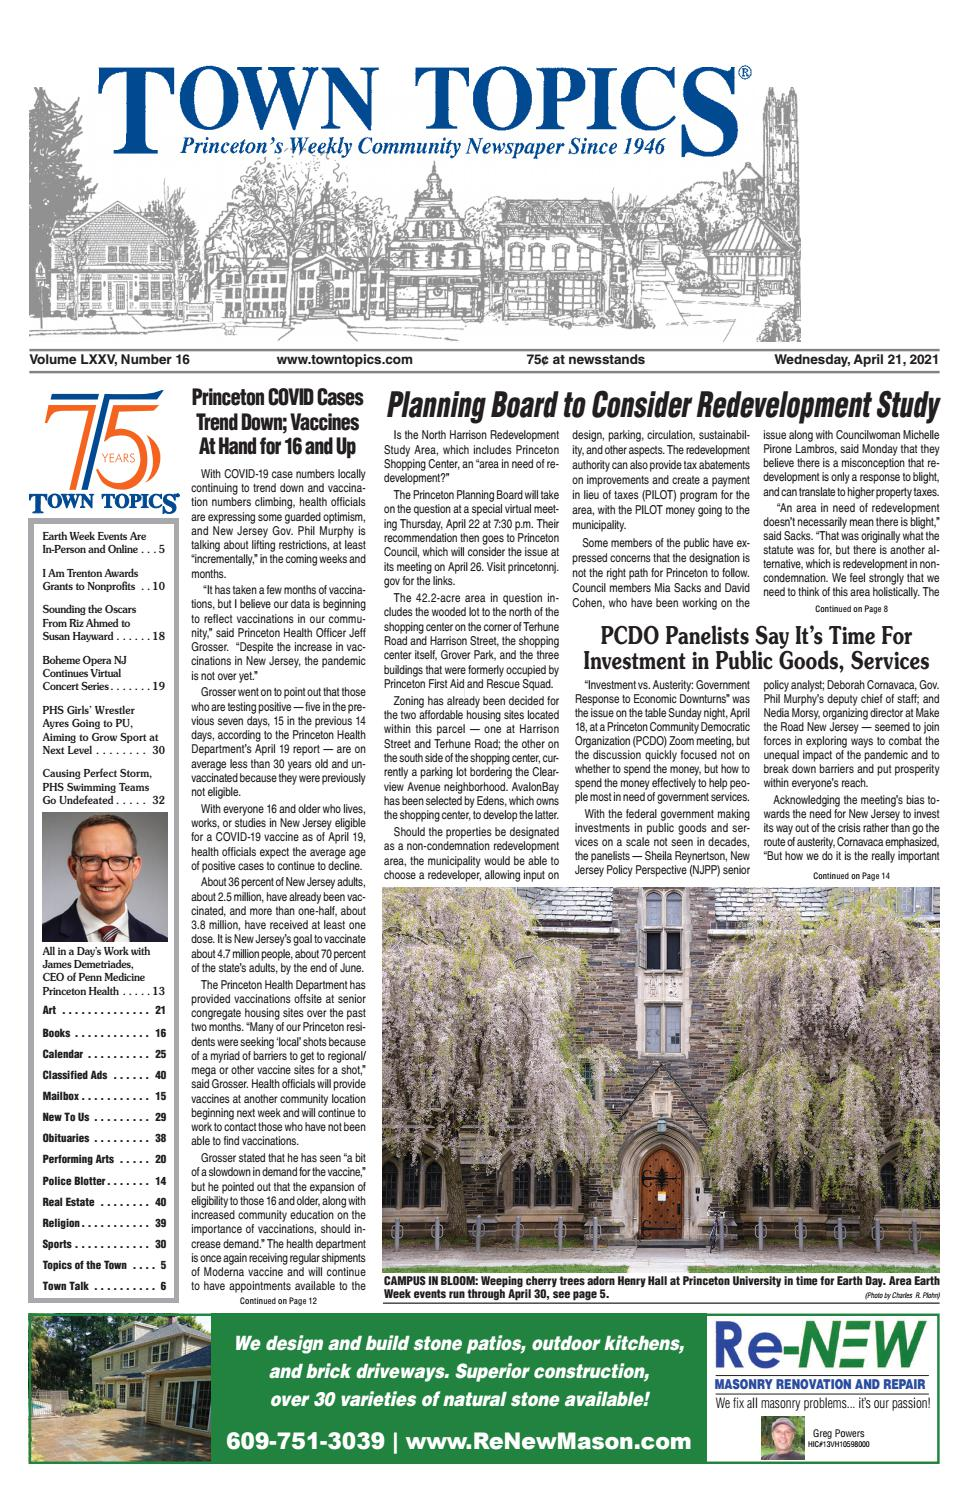 Rutgers Academic Calendar 2022 23 New Brunswick.Town Topics Newspaper April 21 2021 By Witherspoon Media Group Issuu